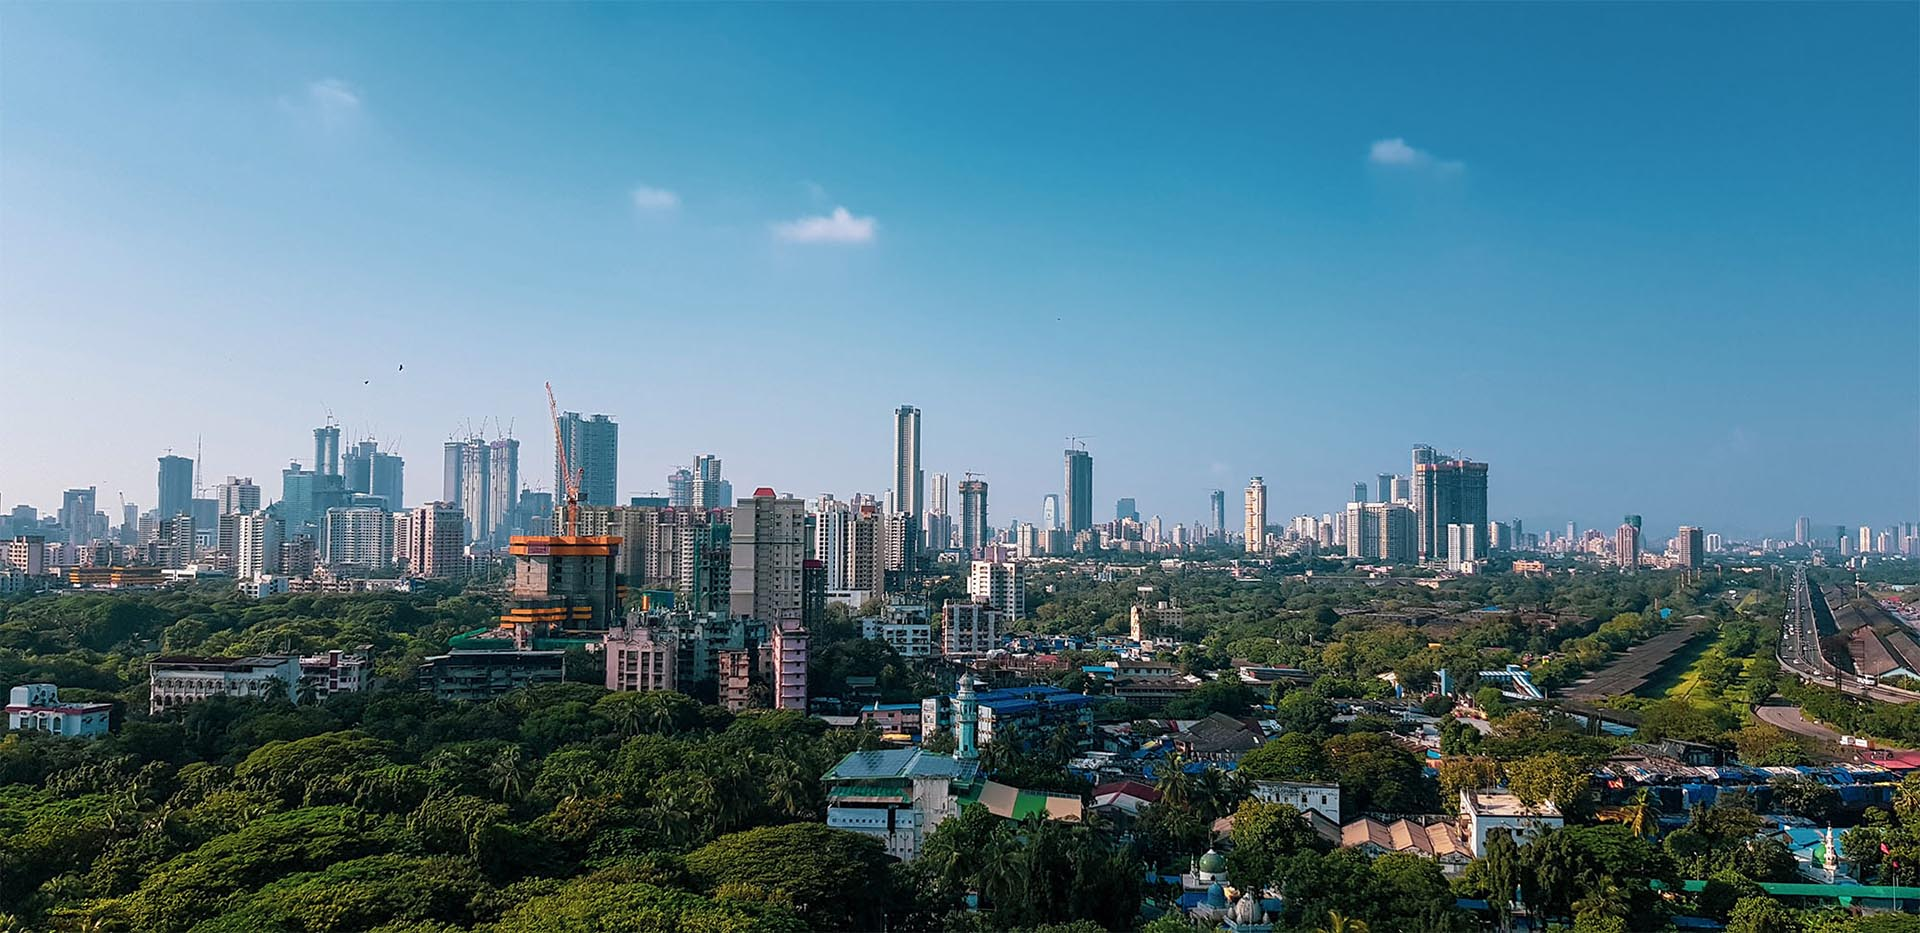 Mumbai's skyline against clear blue skies with cranes dotting the landscape, showcasing infrastructure development.